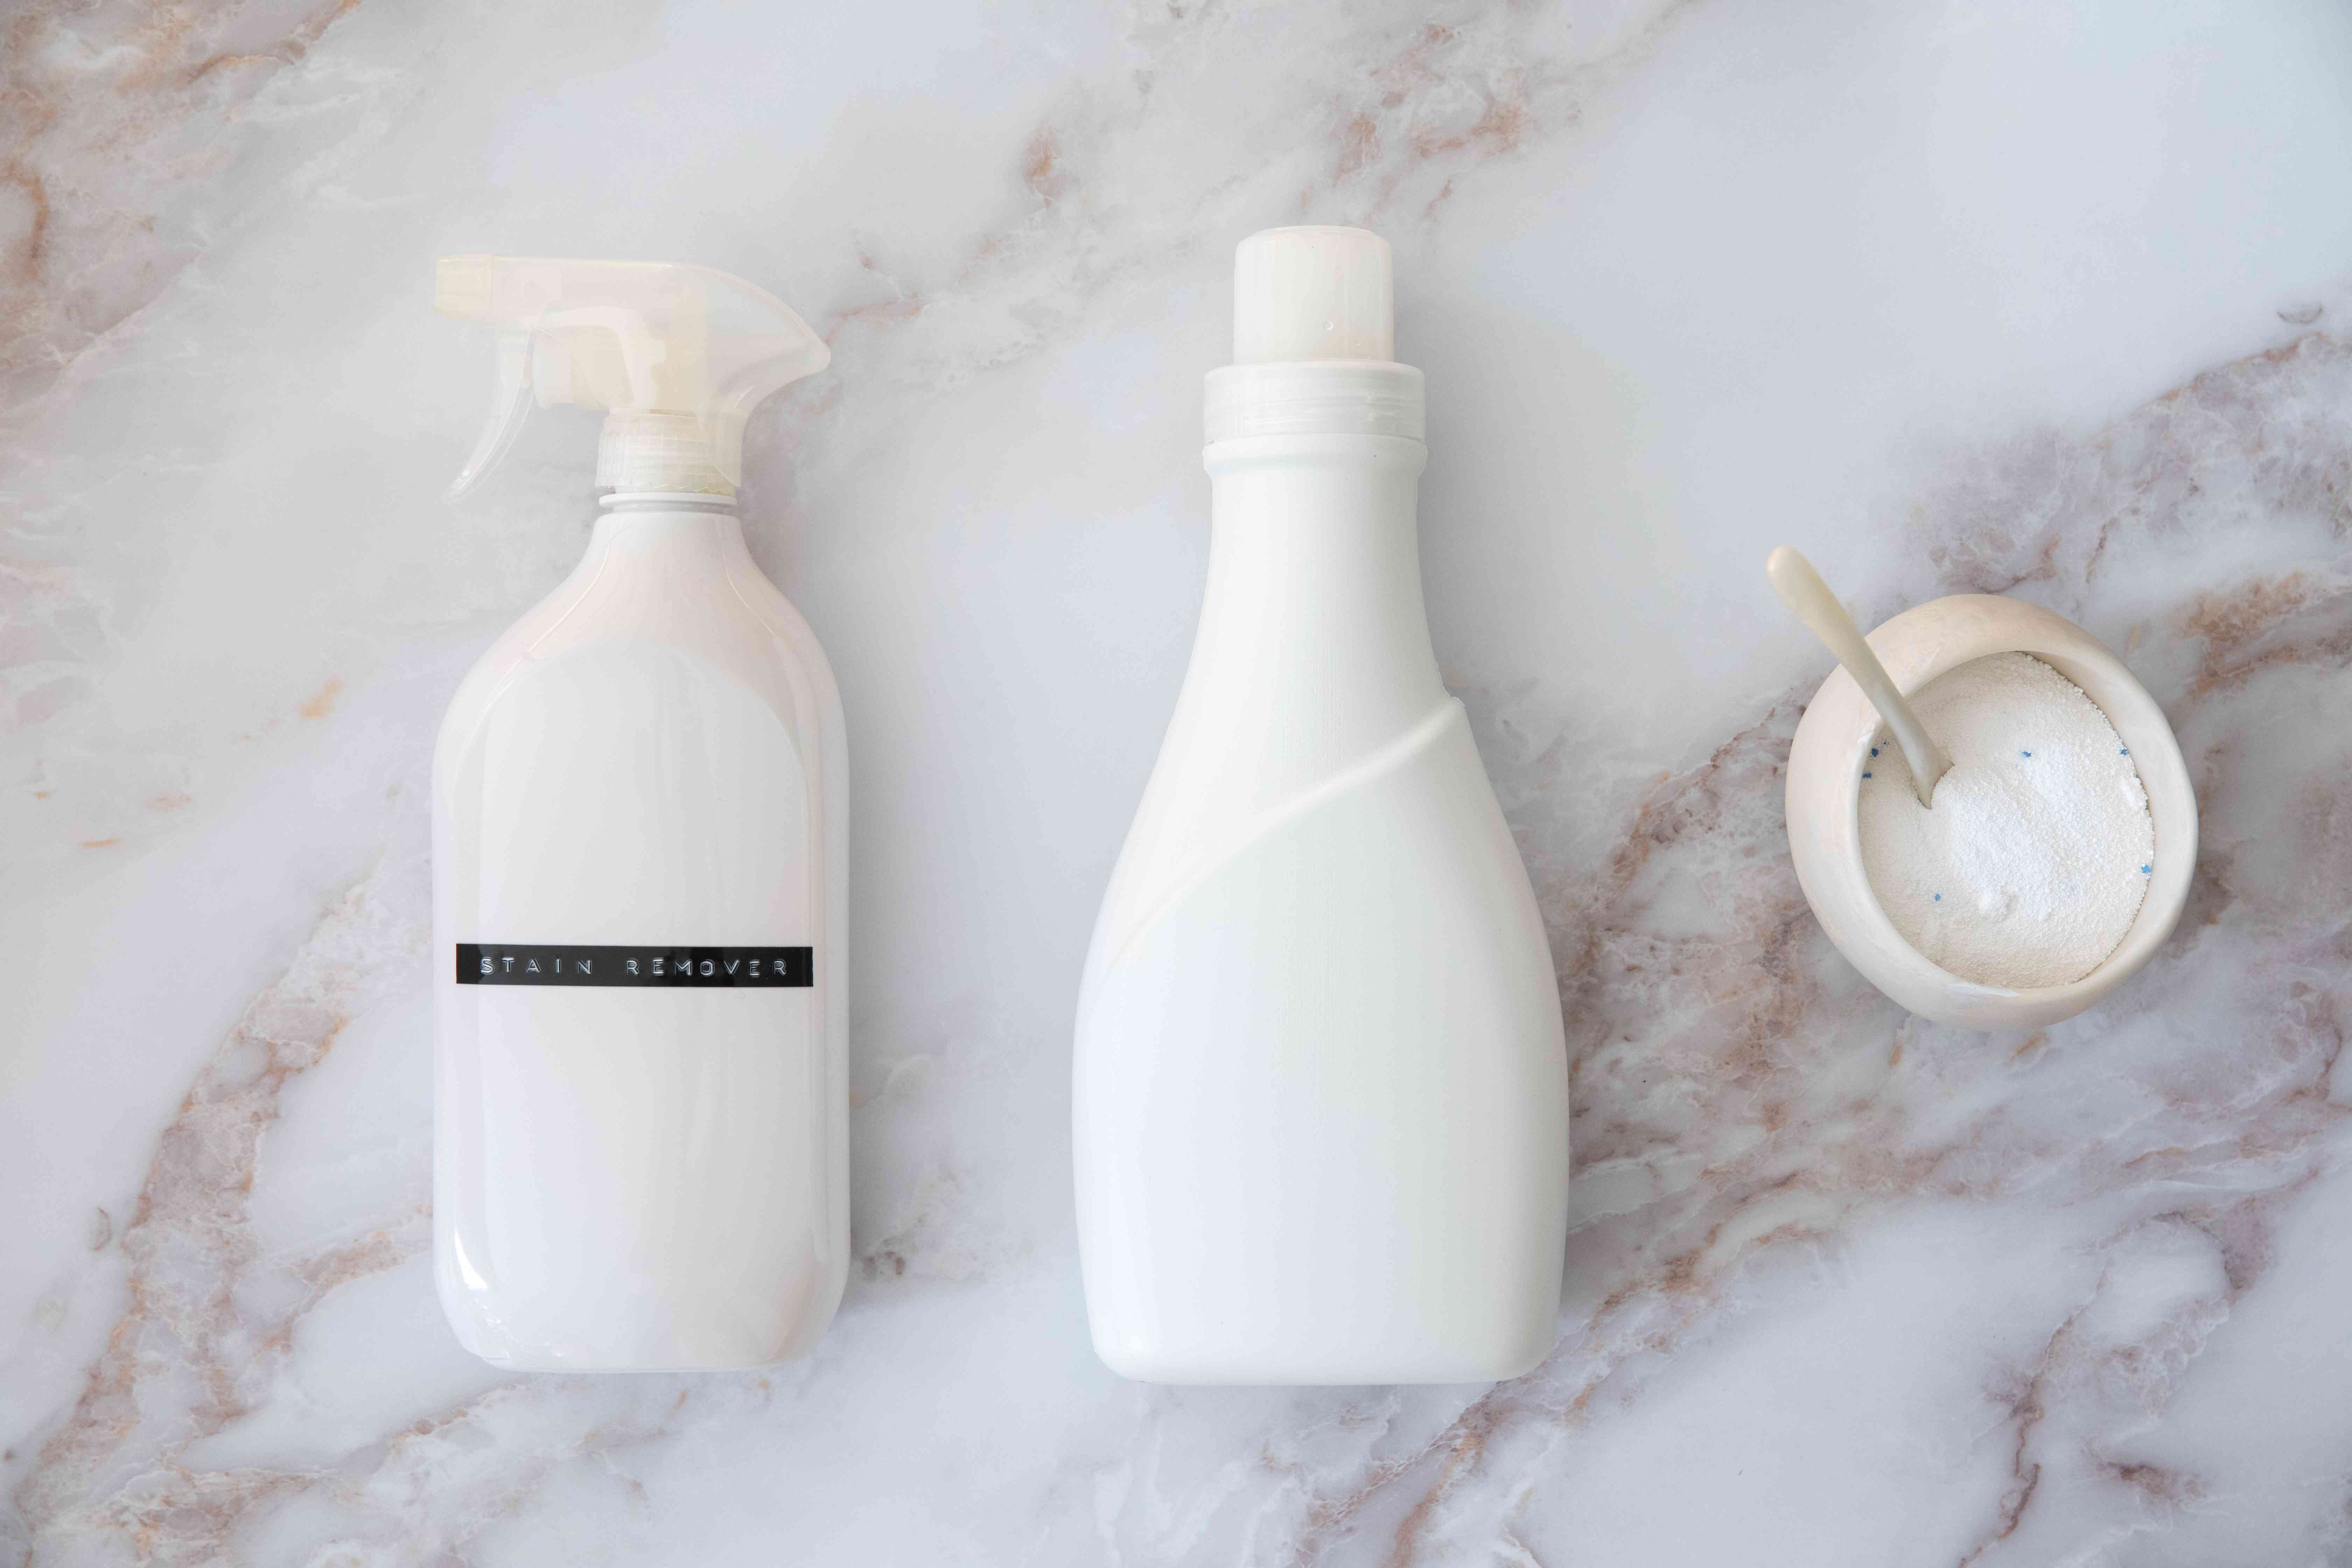 A variety of laundry products